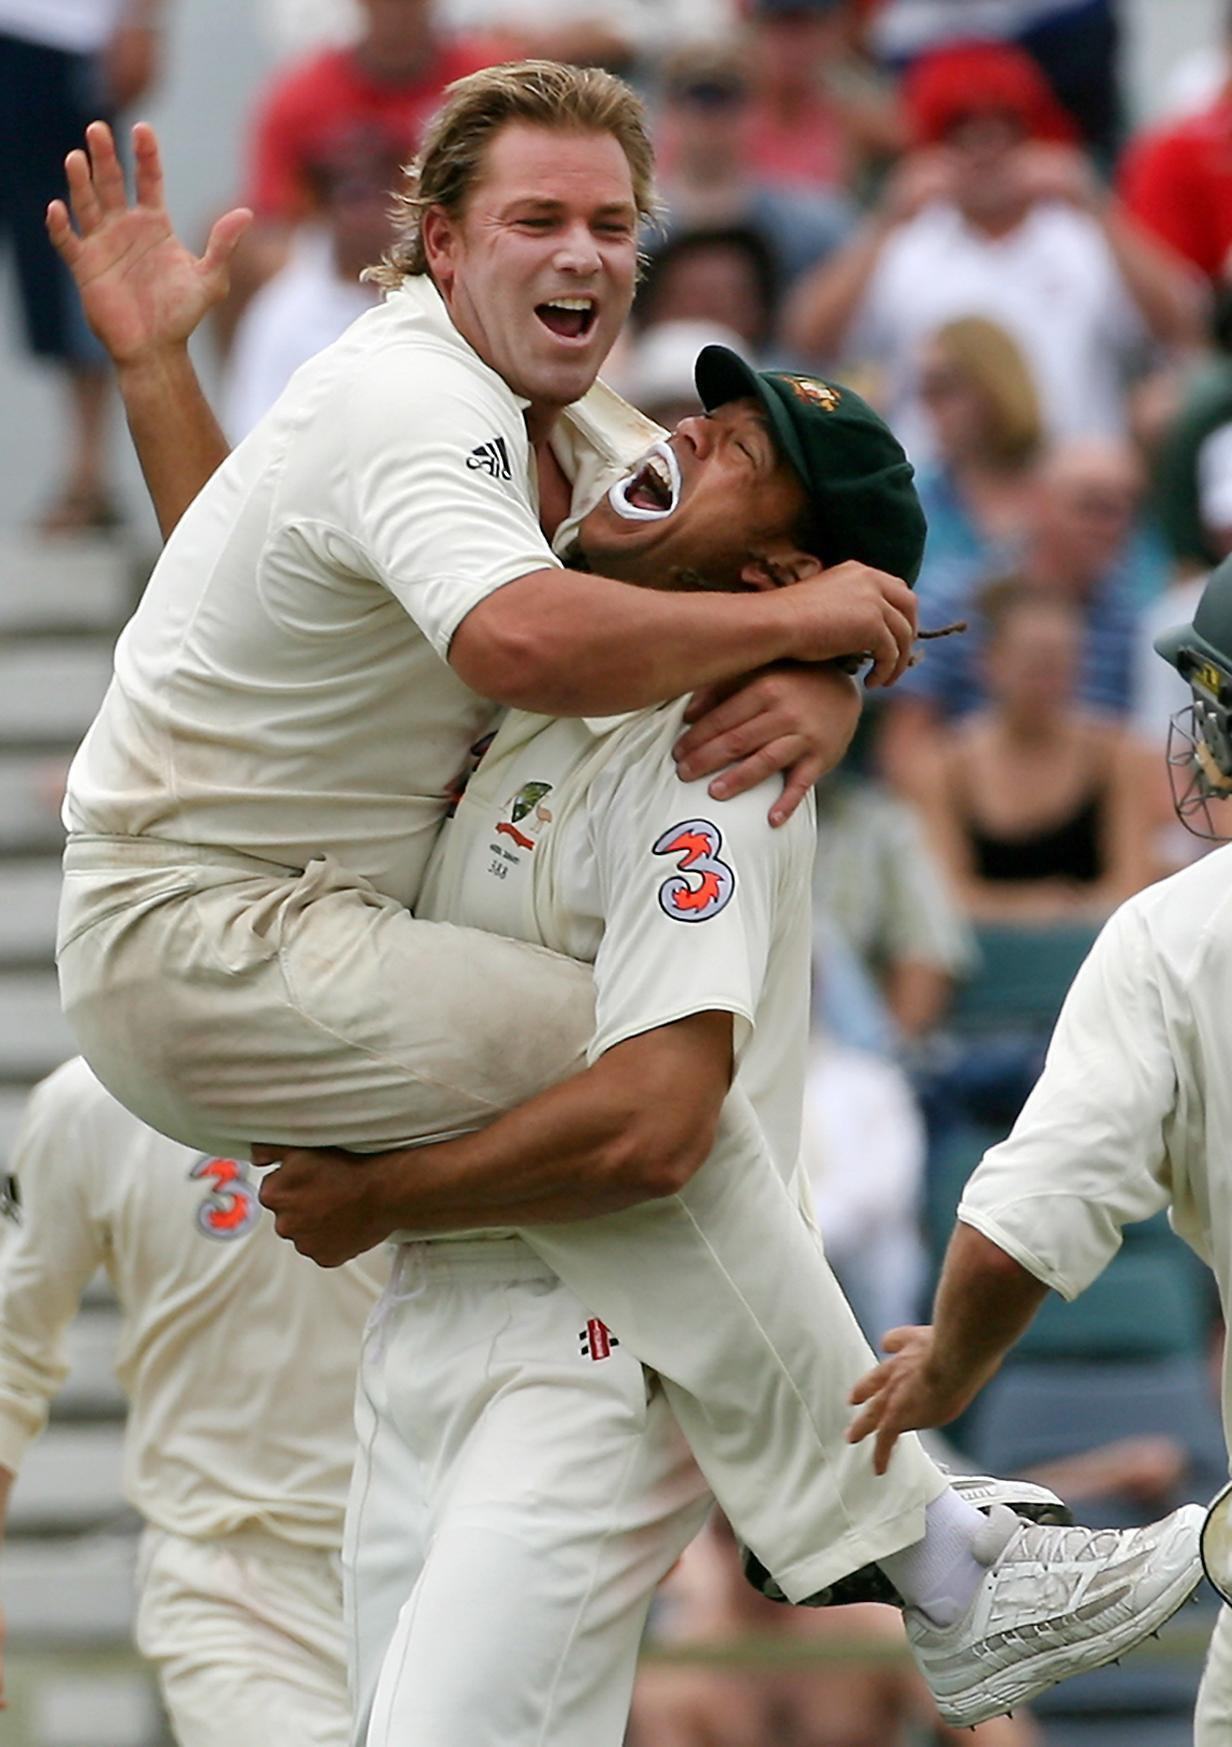 Finished his career with 5-0 defeat of England in 2006-7 and 708 wickets